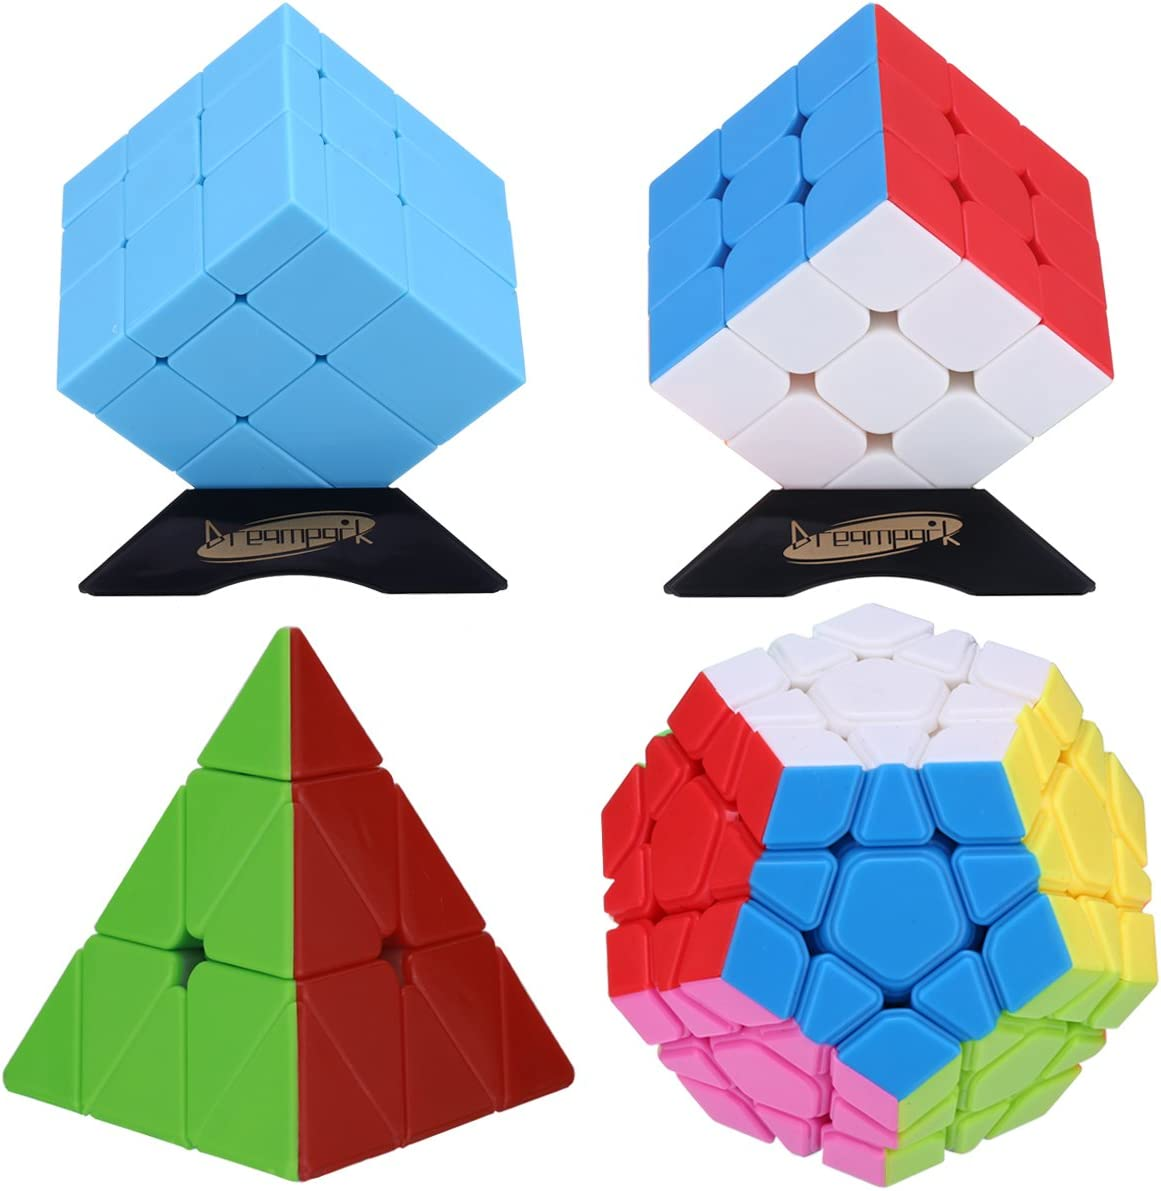 Dreampark 4-Pack Populer Stickerless Magic Cube Puzzle - Includes 3x3x3 Magic Cube, Pyraminx Pyramid Speed Cube, Megaminx Cube and Mirror Cube